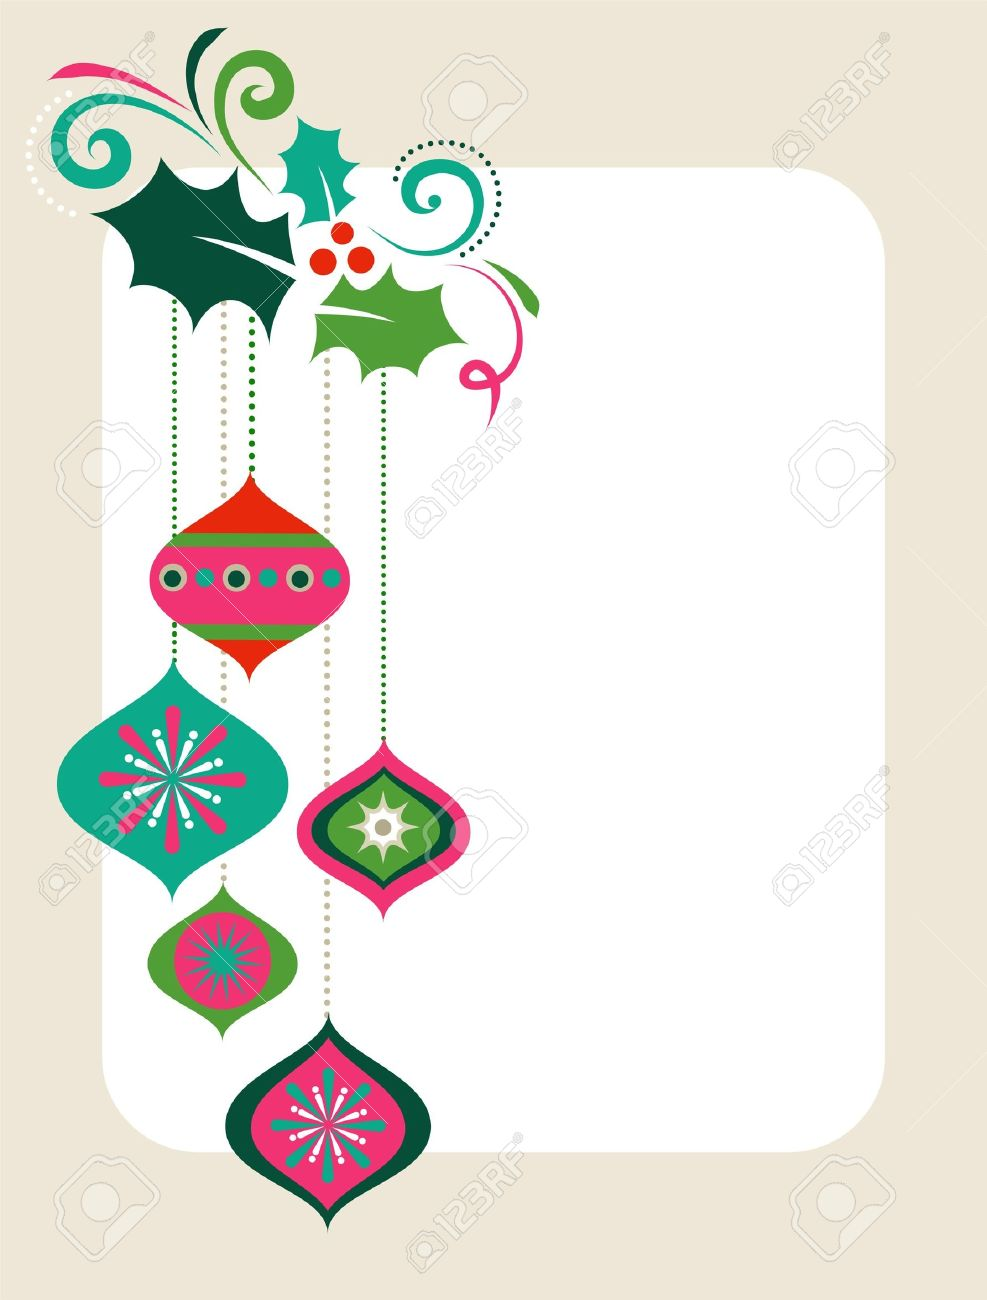 Christmas frame with holly leaves and decorations Stock Vector - 7977978